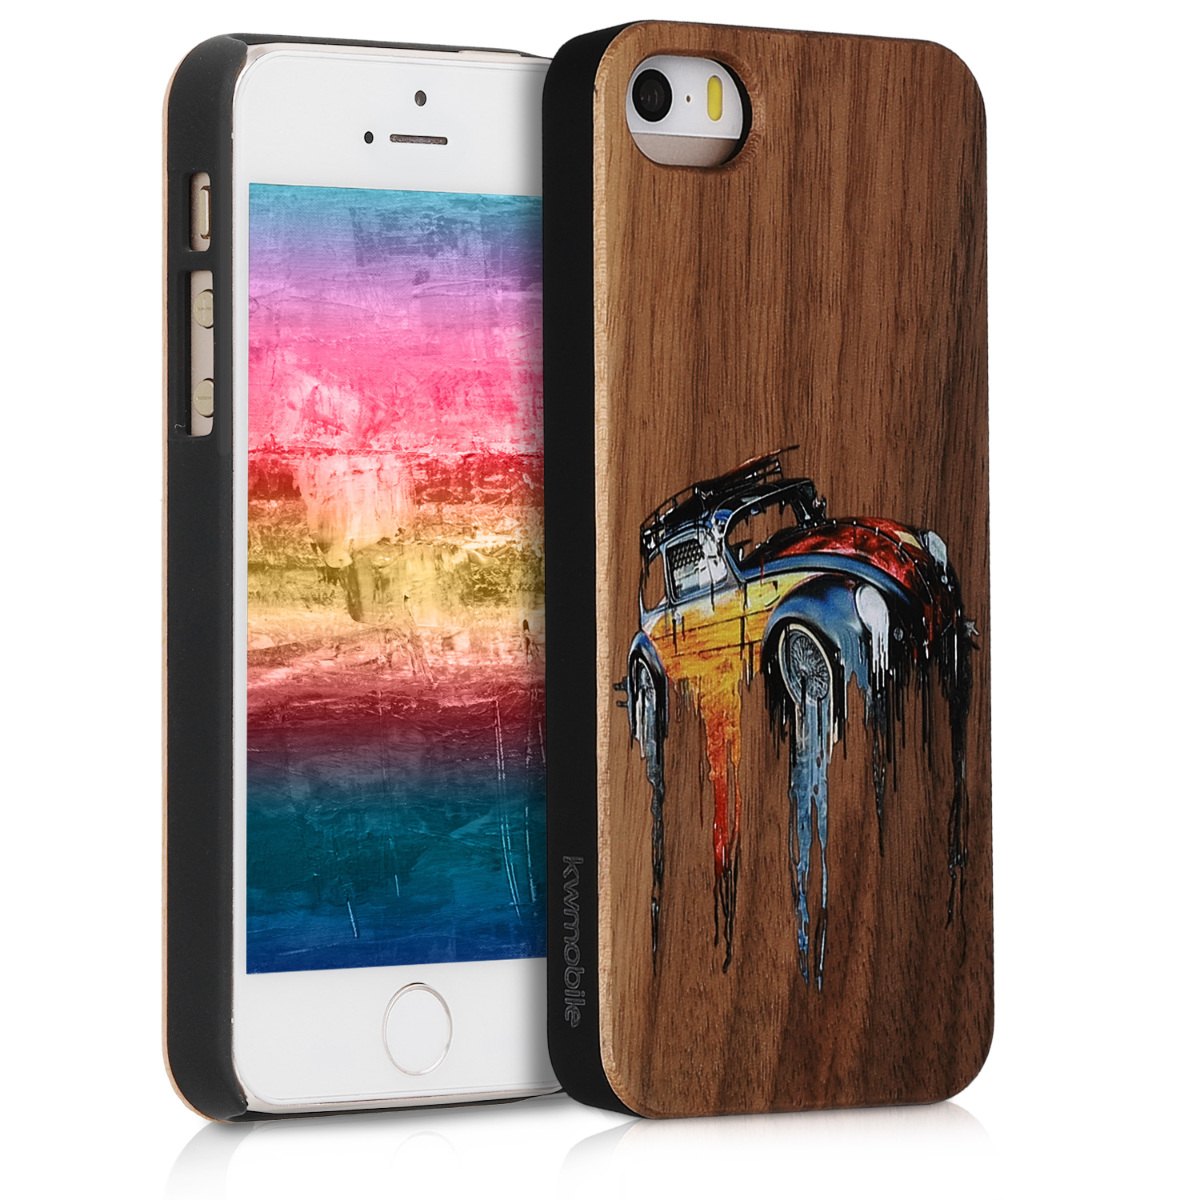 Wooden Case for Apple iPhone SE 1.Gen 2016 5 5S with ...